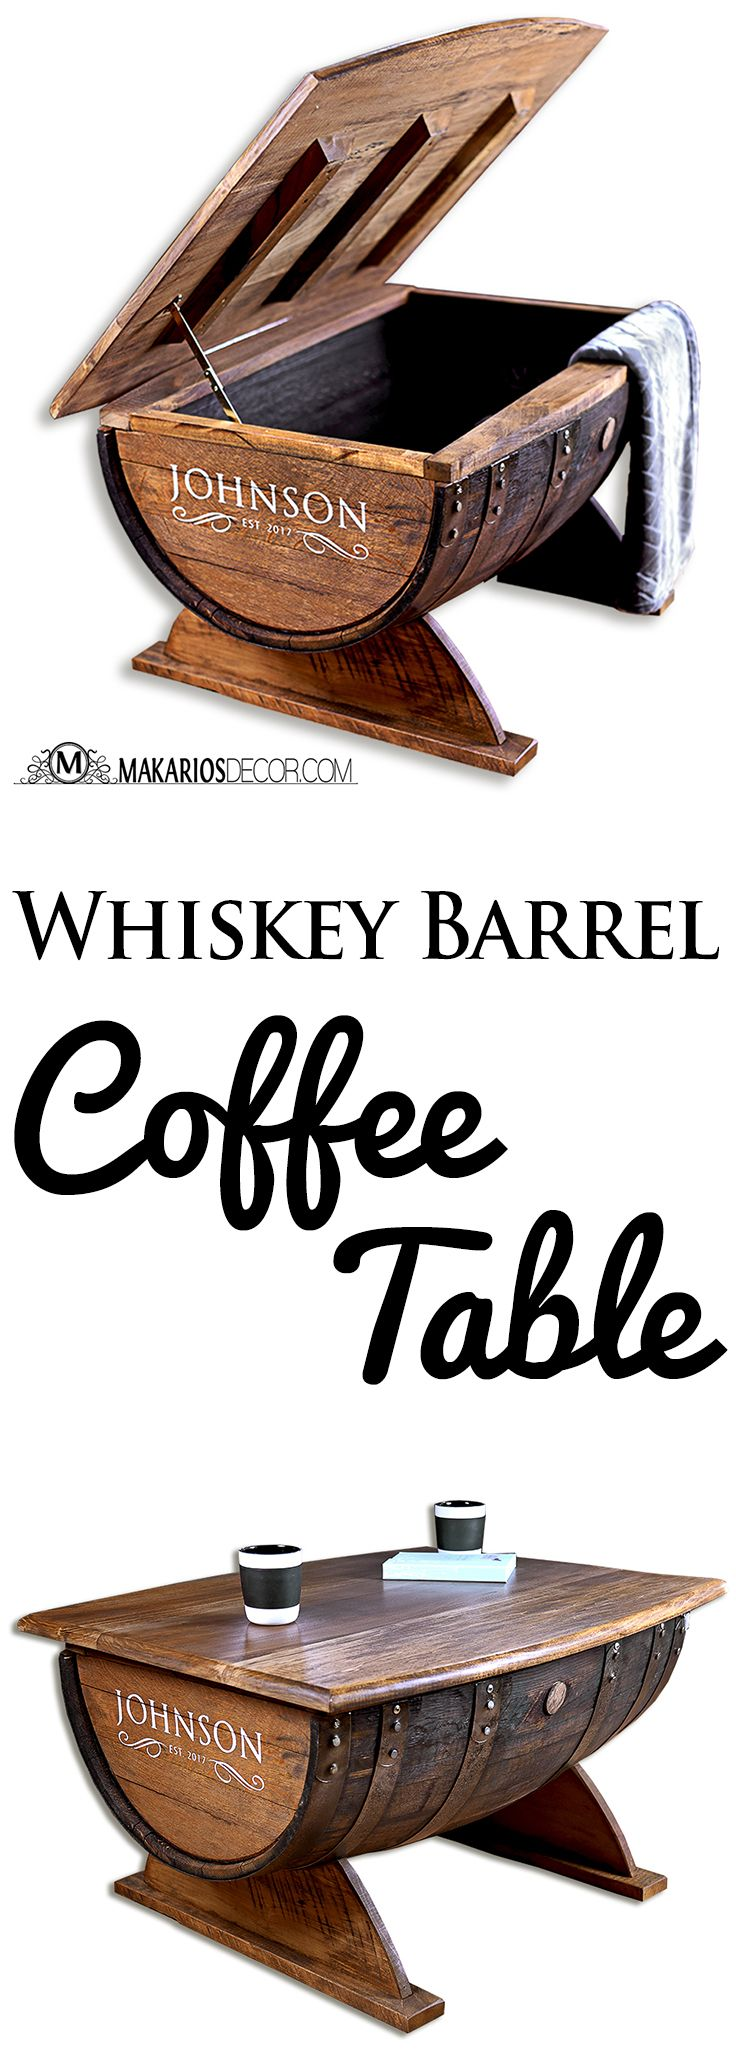 Wine Barrel Coffee Table, Coffee Table, Whiskey Barrel Coffee Table, Wine Barrel Table, Wine Barrel Furniture, Barrel Coffee Table, Barrel Table